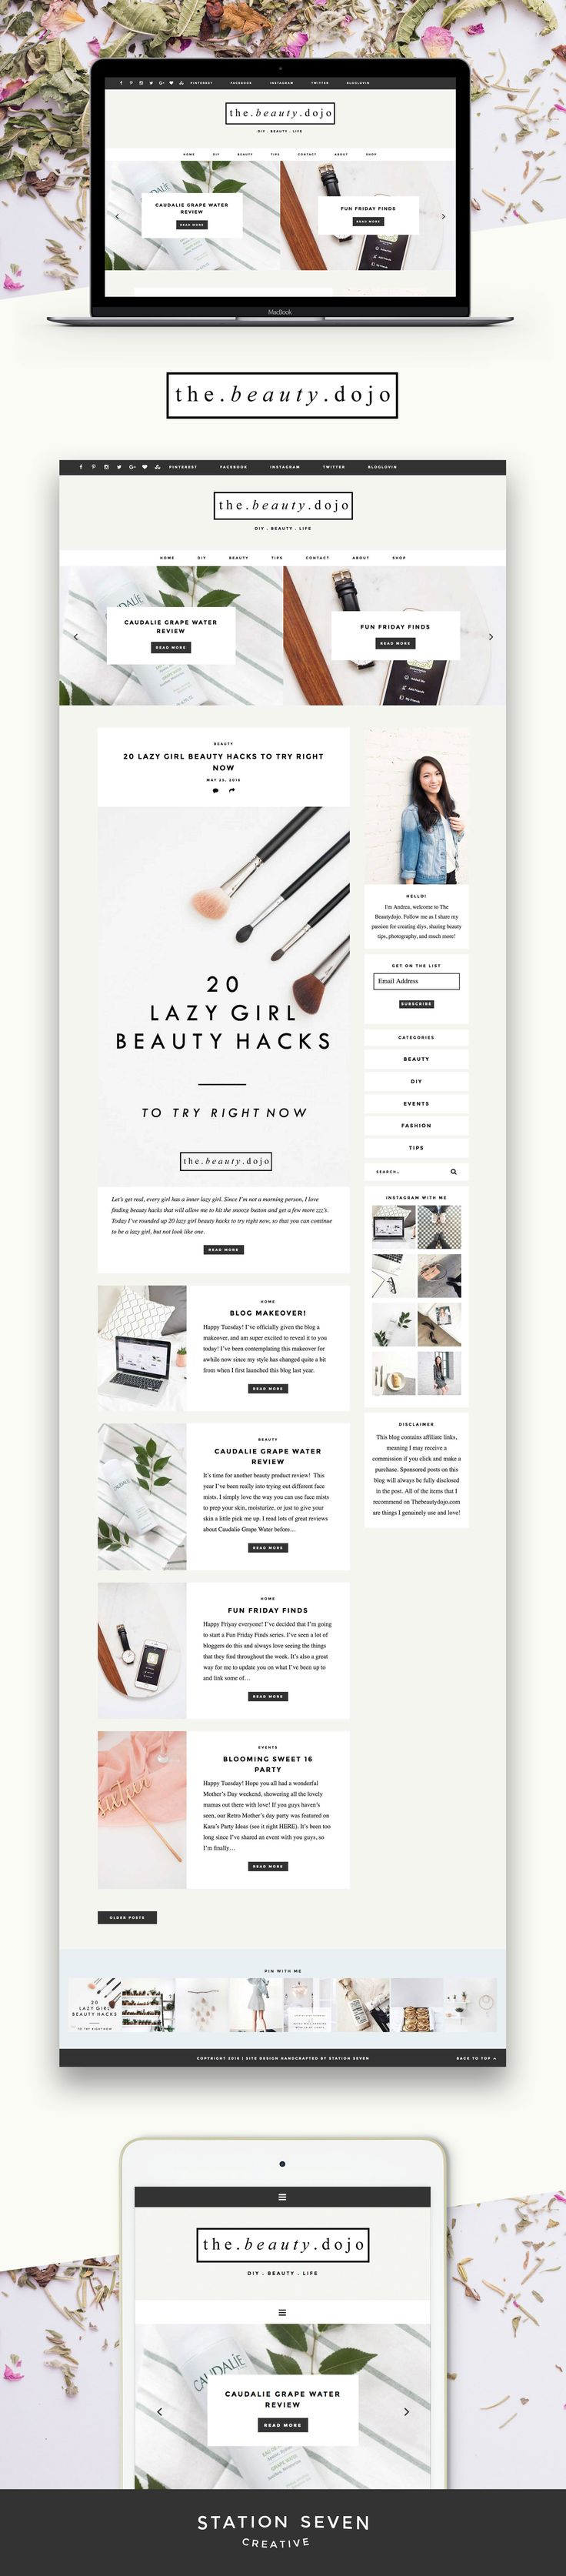 Simple and cozy site by The Beauty Dojo running on Station Seven's WordPress…